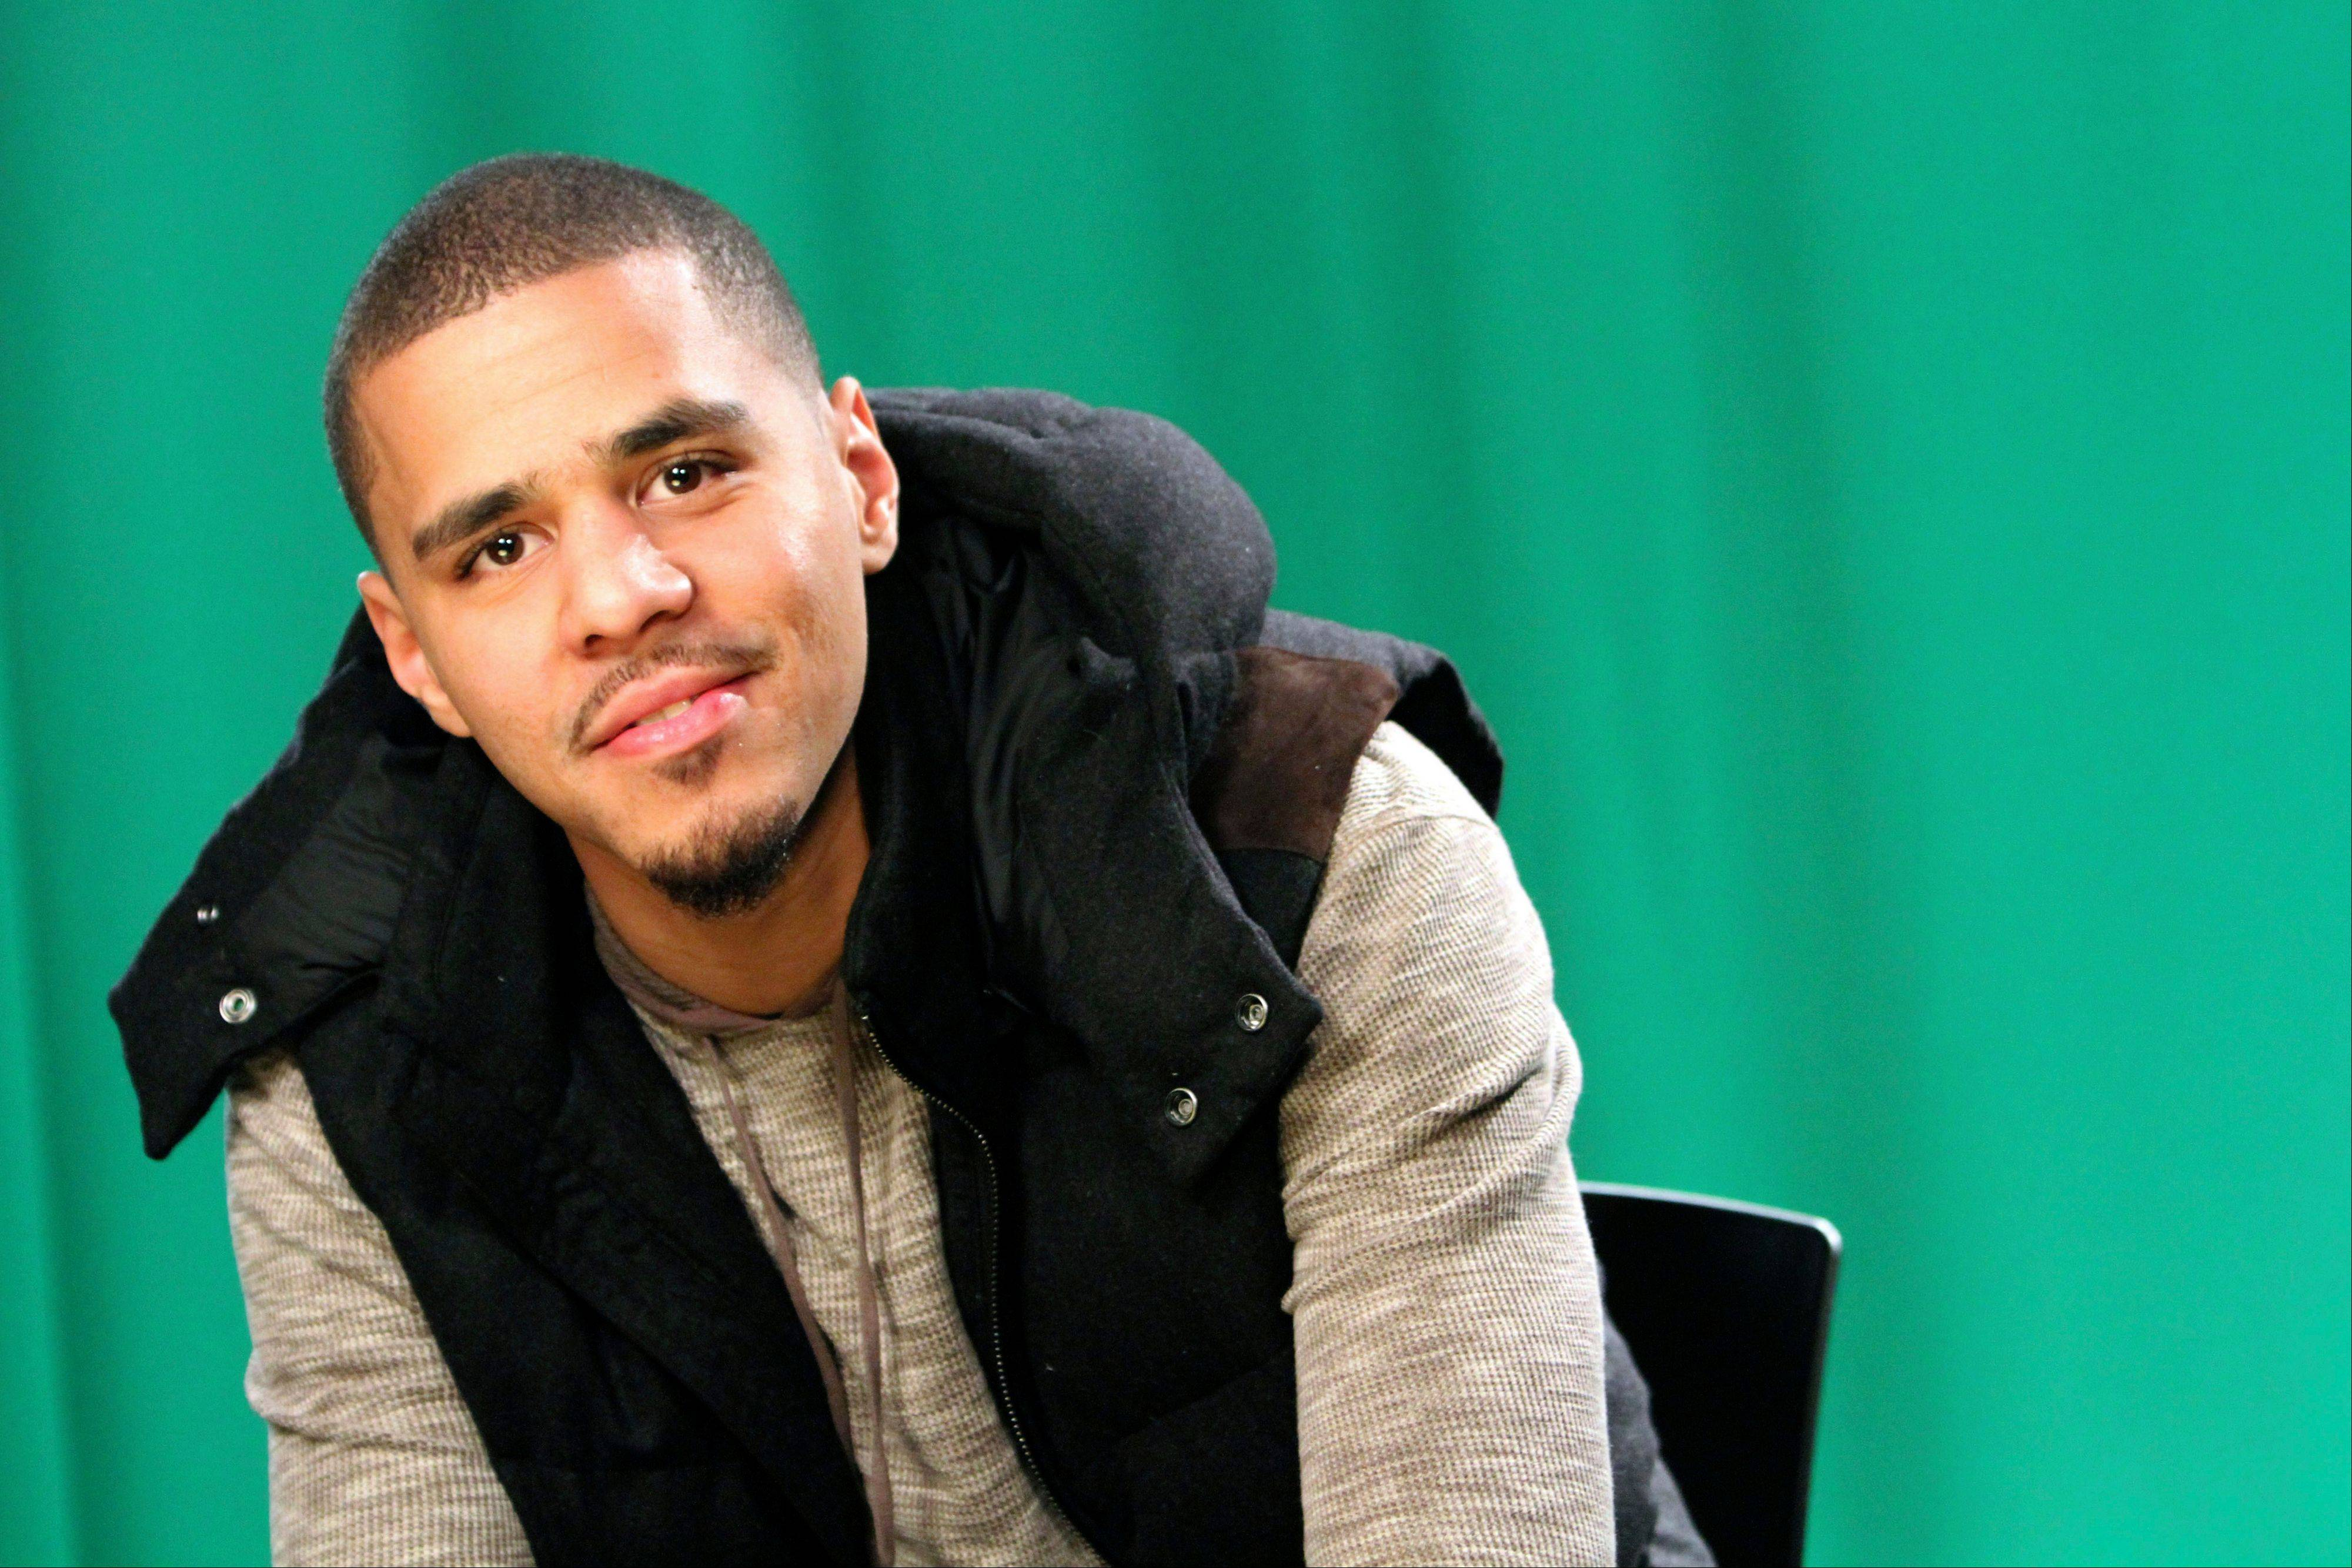 Rapper J. Cole apologized to those with autism and their families for an offensive lyric. Cole says in a blog post Sunday that he doesn�t agree with the recent trend of pressure rappers have faced to apologize when they step over a perceived line, but in this case he feels he went too far in a verse he contributed to Drake�s �Jodeci Freestyle.�